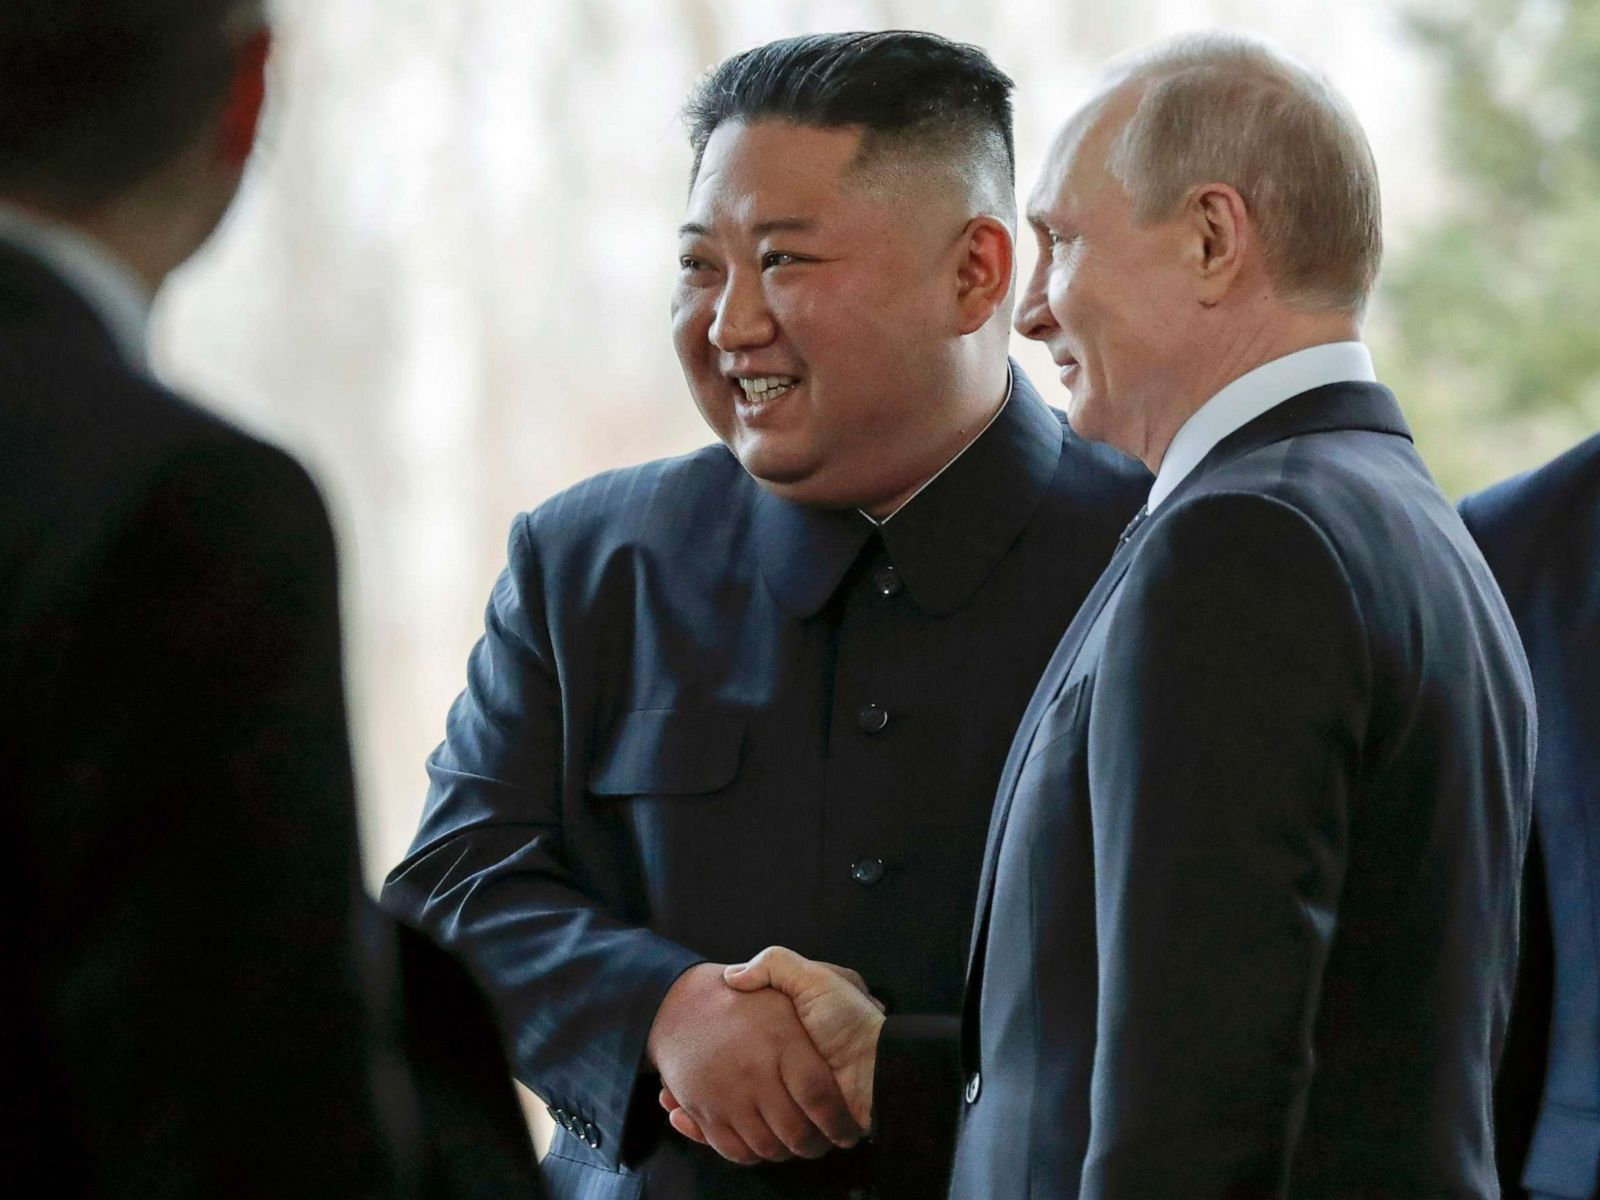 North Korean Leader Kim Jong-un's Russia visit unsettles China, claims research analyst Jenny Town